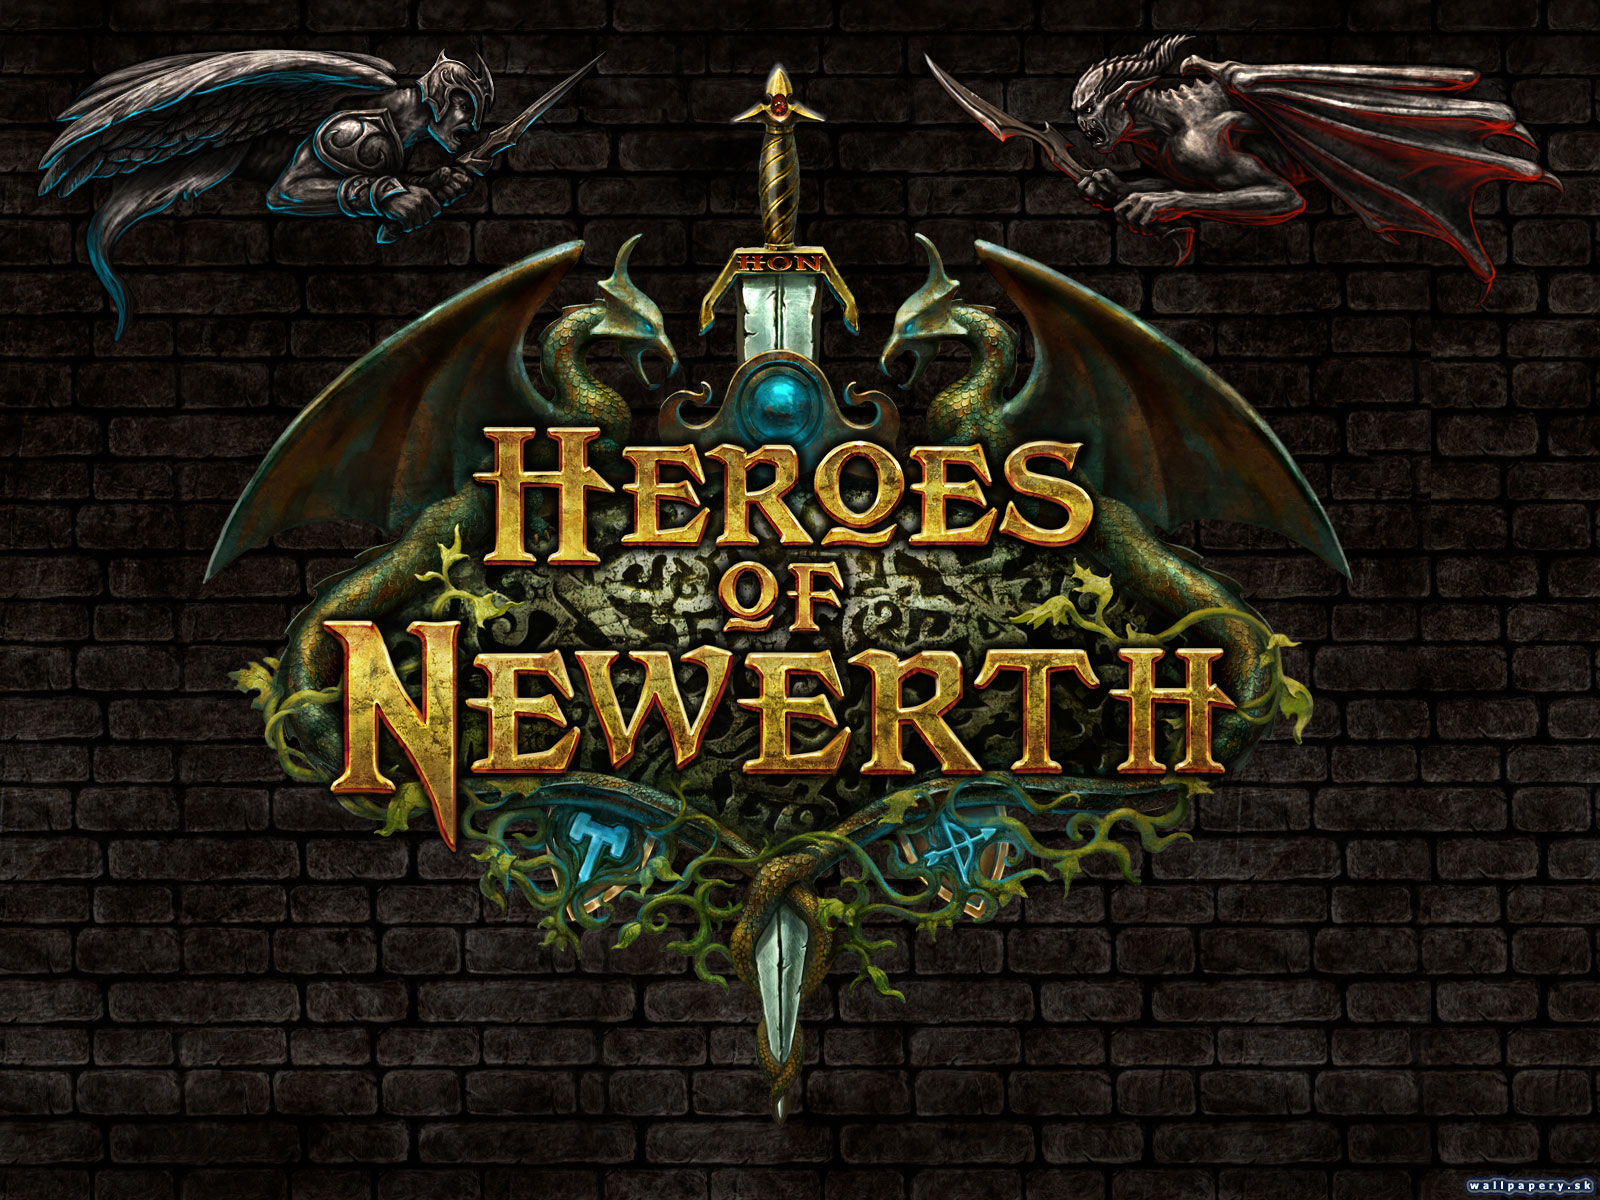 Heroes of Newerth - wallpaper 4